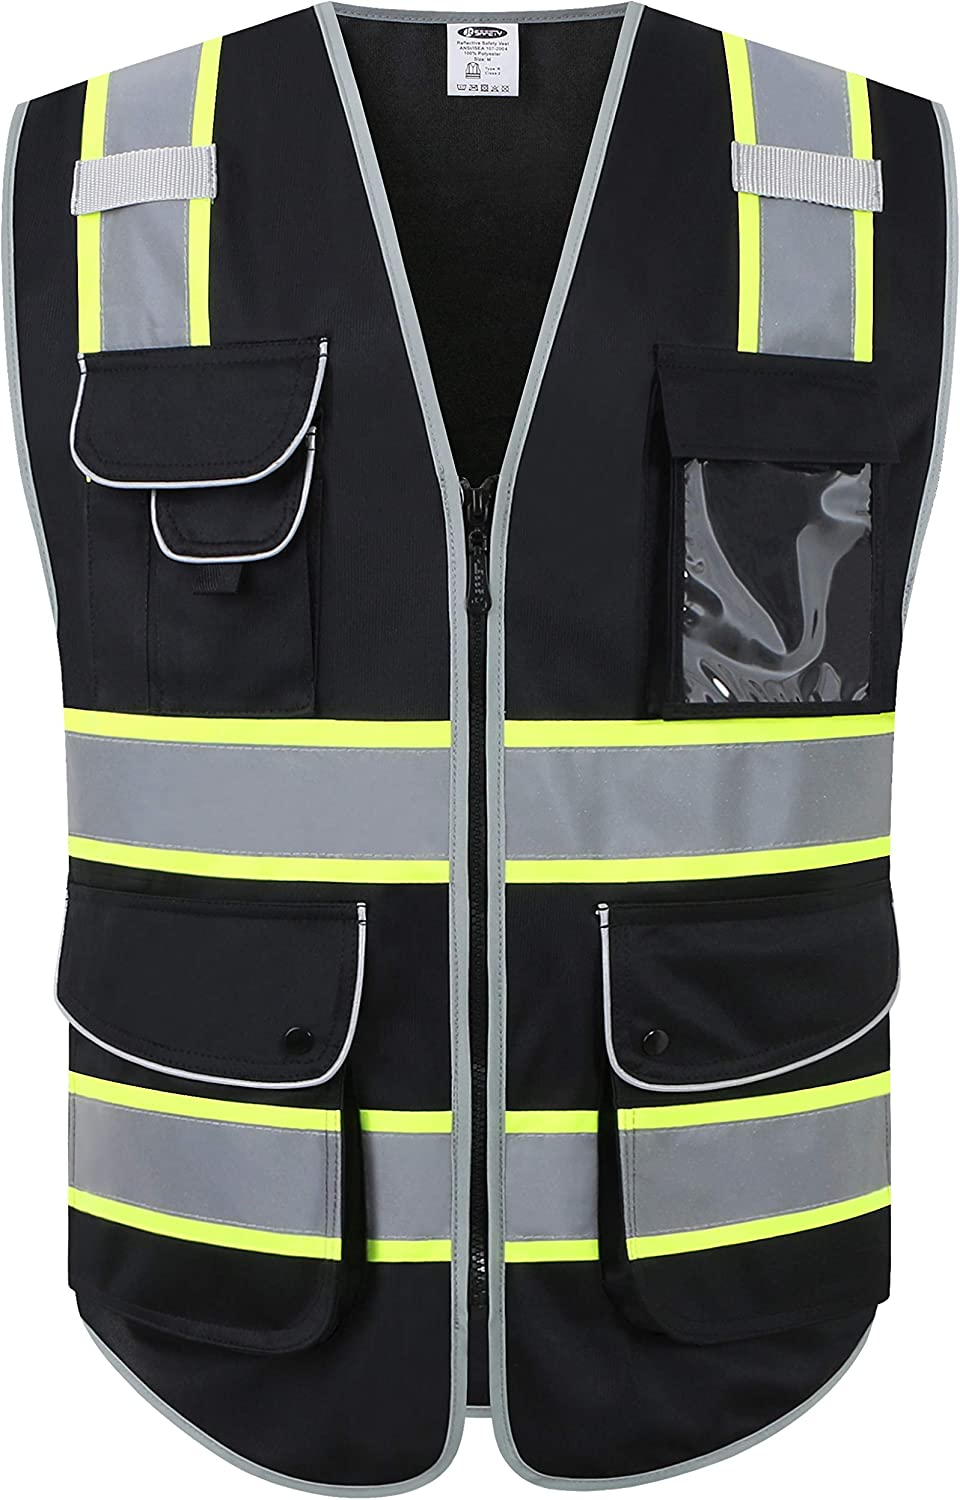 JKSafety 9 Pockets High Visibility Zipper Front Safety Vest Black with Dual Tone High Reflective Strips Meets ANSI/ISEA Standards (Black Yellow Strips, Medium)